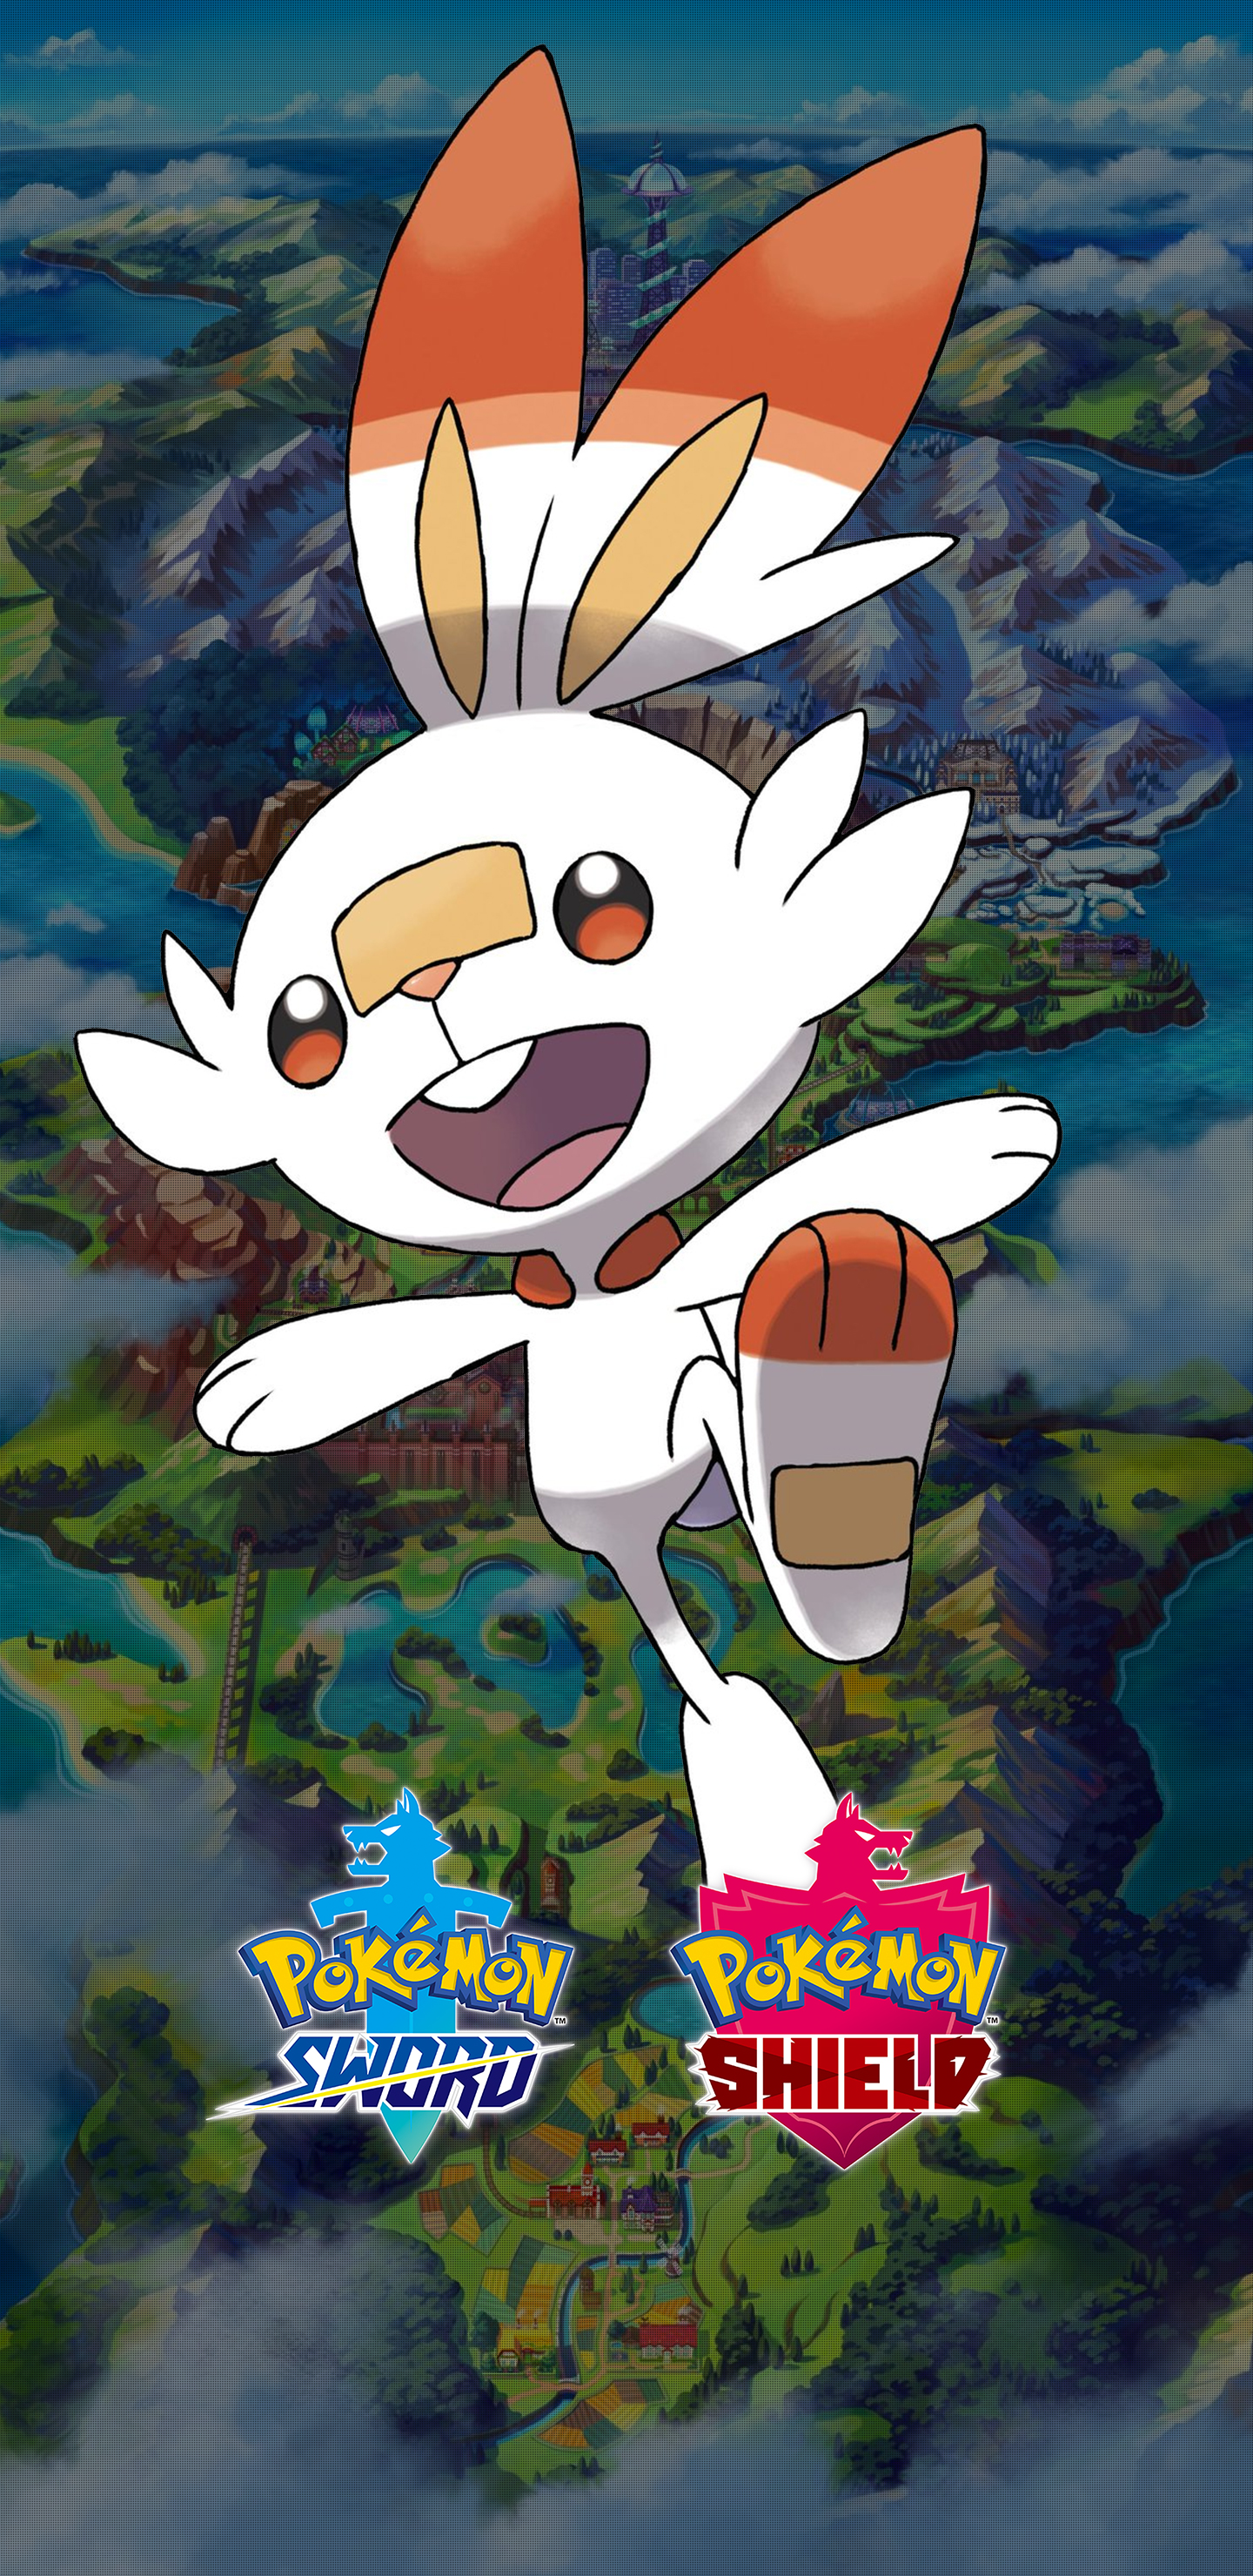 Cute Pokemon Iphone 6 Wallpaper Pokemon Sword And Shield Scorbunny Wallpapers Cat With